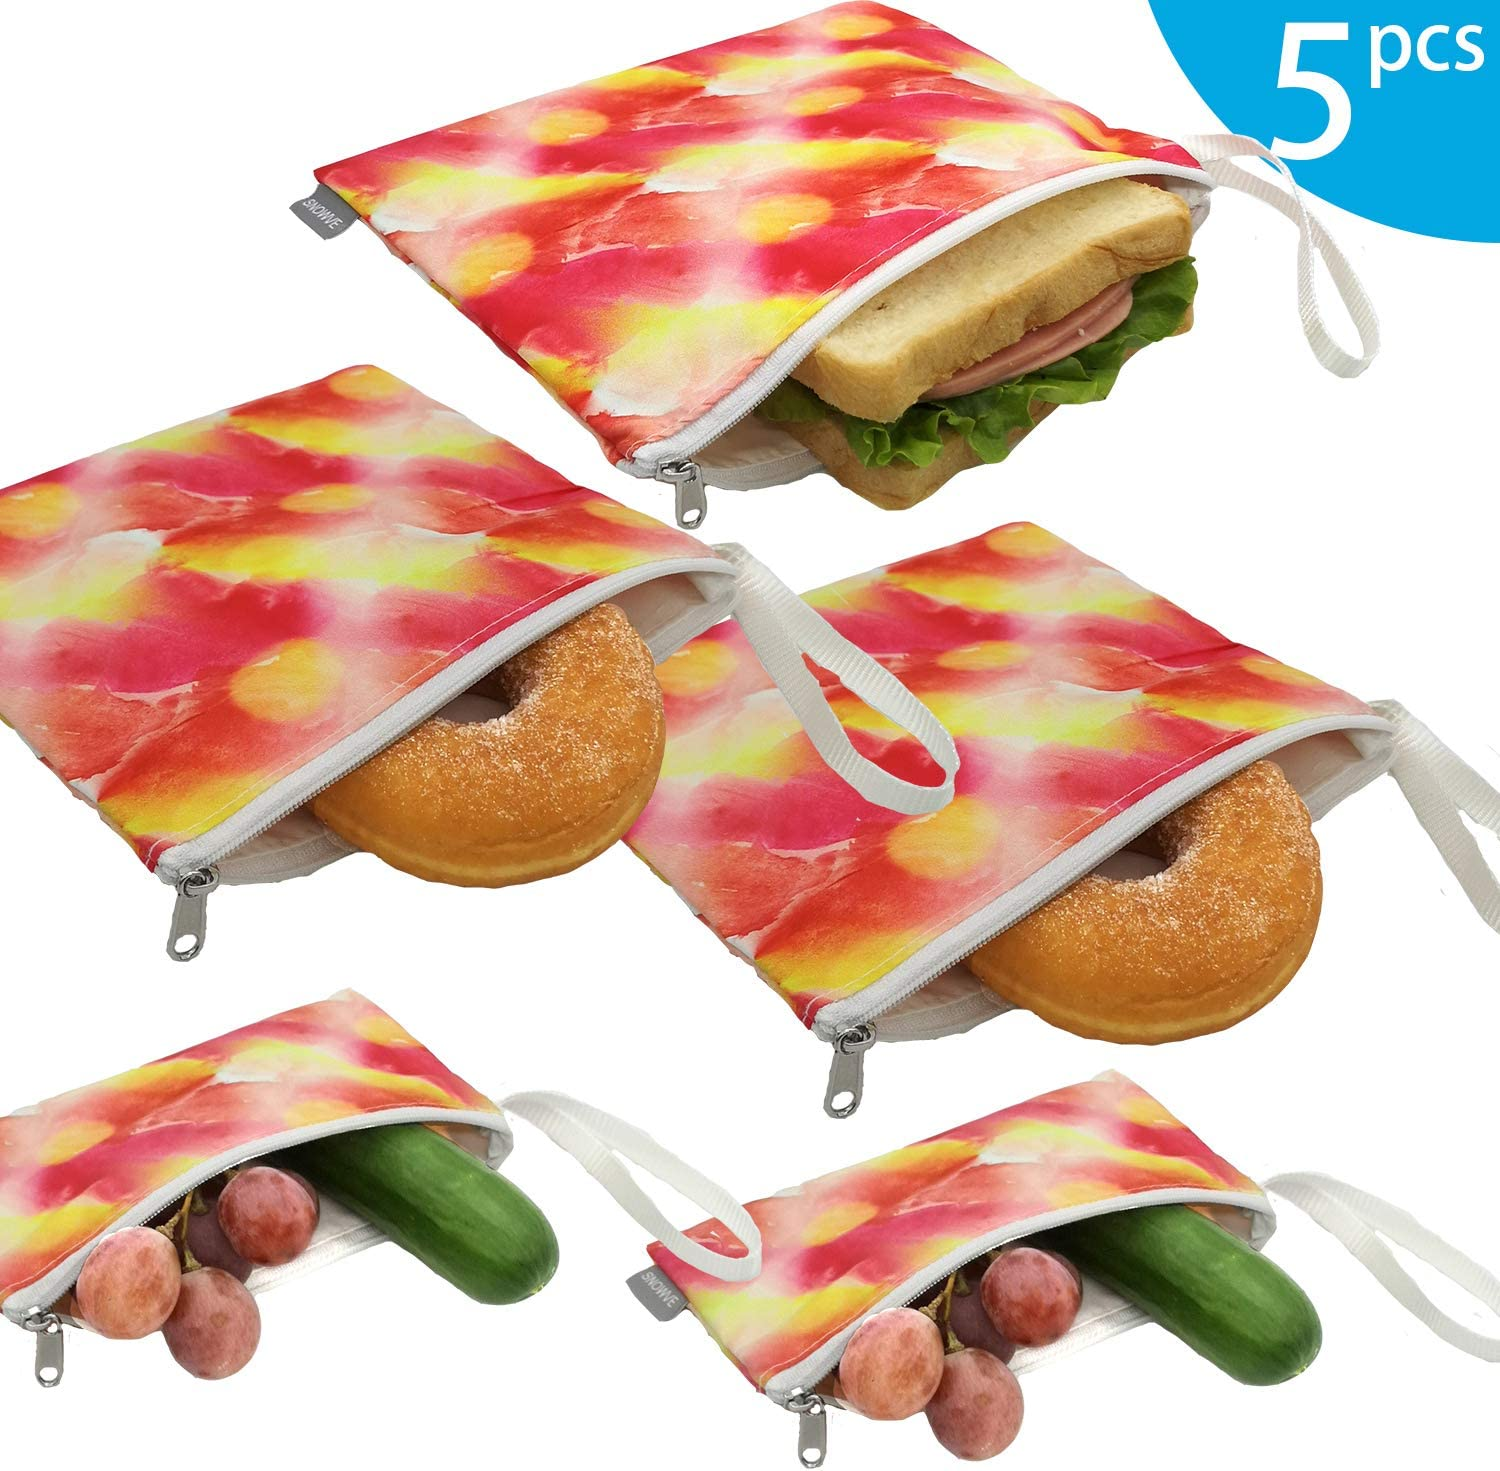 Reusable Snack Bags Sandwich Bags - Dual Layer Eco Friendly Dishwasher Safe Lunch Baggies, BPA Free, PVC Free, Set of 5 Pack(Sunshine)